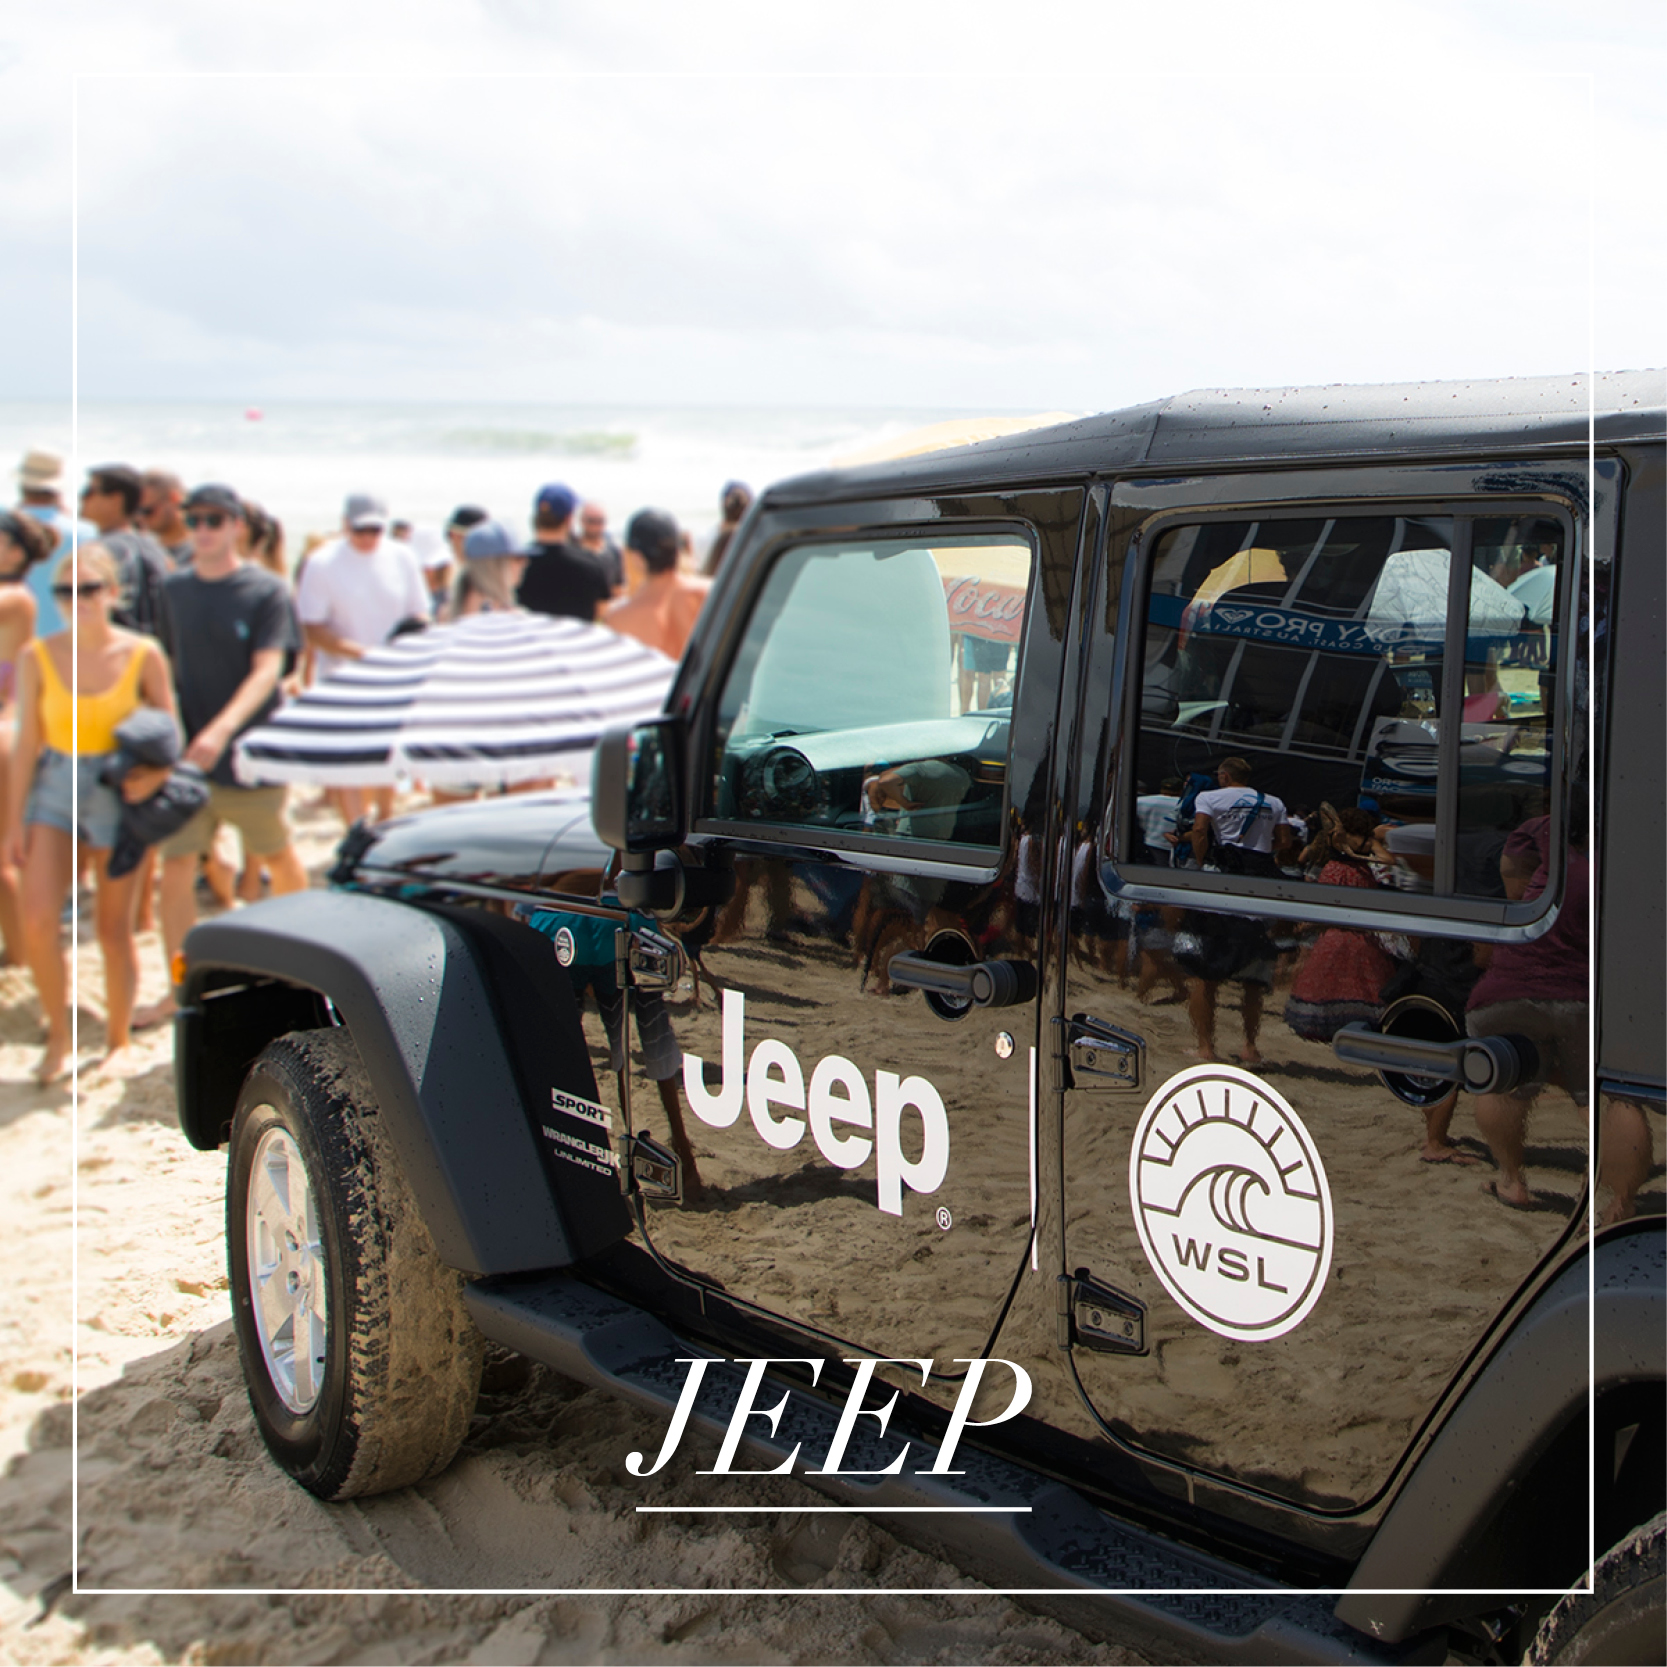 2018 WSL X JEEP COMPASS       Brief    Our brief was to celebrate the arrival in Australia of the Jeep Compass, an all-new compact SUV, focusing on its off-road driving experience, and leveraging Jeep's sponsorship of the World Surf League and competing Jeep-sponsored athletes, Tyler Wright, Jordy Smith and Malia Manuel.      Strategy    Our strategy centred upon creating a multi-day event bringing to life the Jeep Compass brand statement of 'Find Your True North'. Two Birds Talking identified and secured 16 media and lifestyle influencers, among them actor Harley Bonner and model Natalie Roser, and titles such as Women's Health, Body & Soul and The Tailored Man, giving them the opportunity to trial the all-new vehicles, off-roading at Evans Head & Airforce Beach along the QLD coastline. The experience also included private surf lessons, nature photography workshops and exclusive meet and greets with World Surf League athletes.     Results    Three month public relations campaign  8 traditional media placements including exclusive one-on-one interviews with Tyler Wright and Jordy Smith with Women's Health, Body & Soul, and Women's Fitness.  19 million+ social media eyeballs, from 172 posts overall coverage output exceeded KPI by 50%.